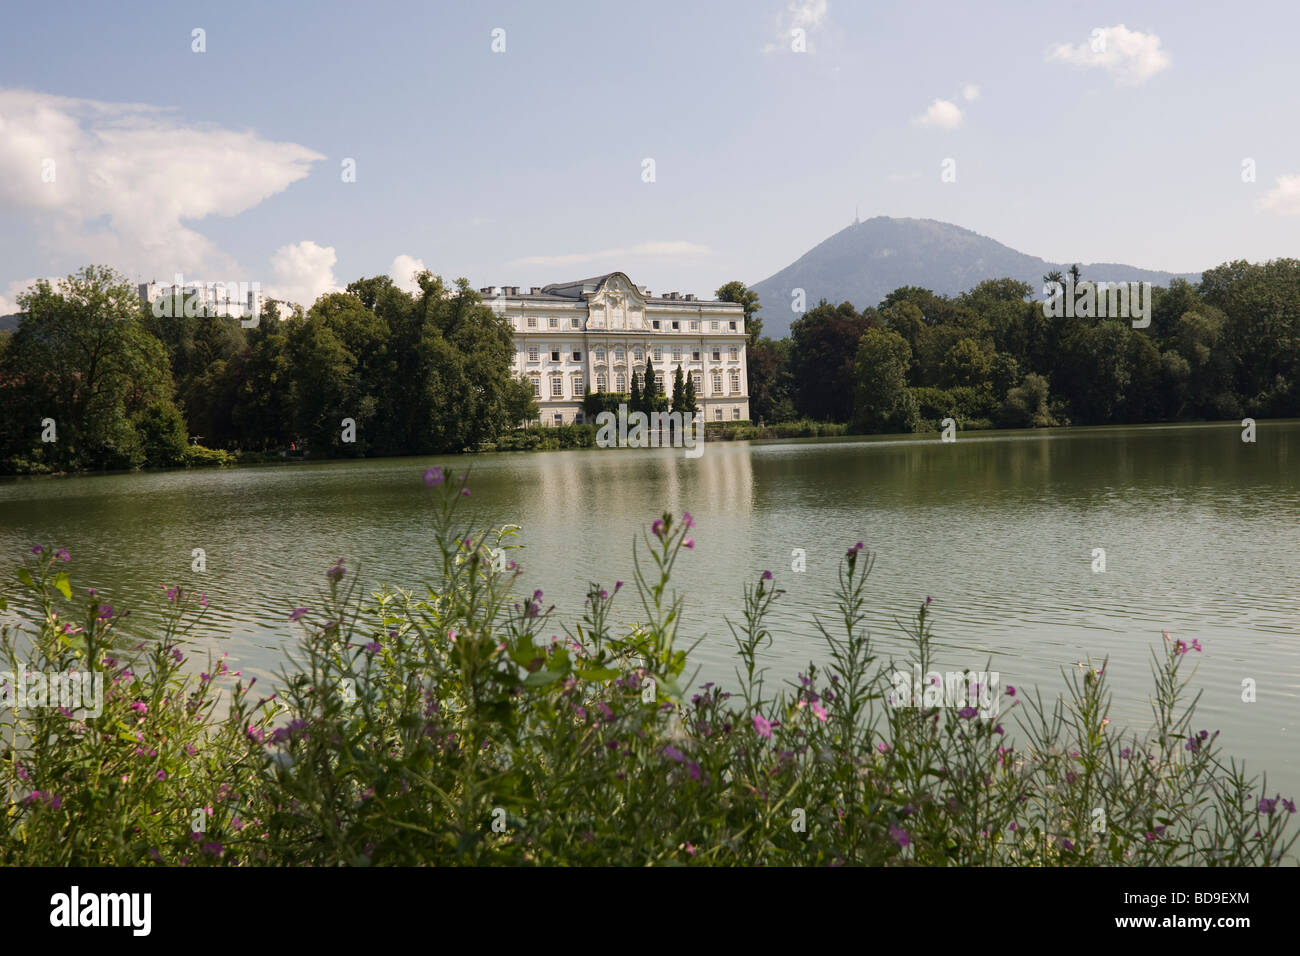 Von Trapp family house in The film of Sound of Music in Salzburg, Austria EU - Stock Image